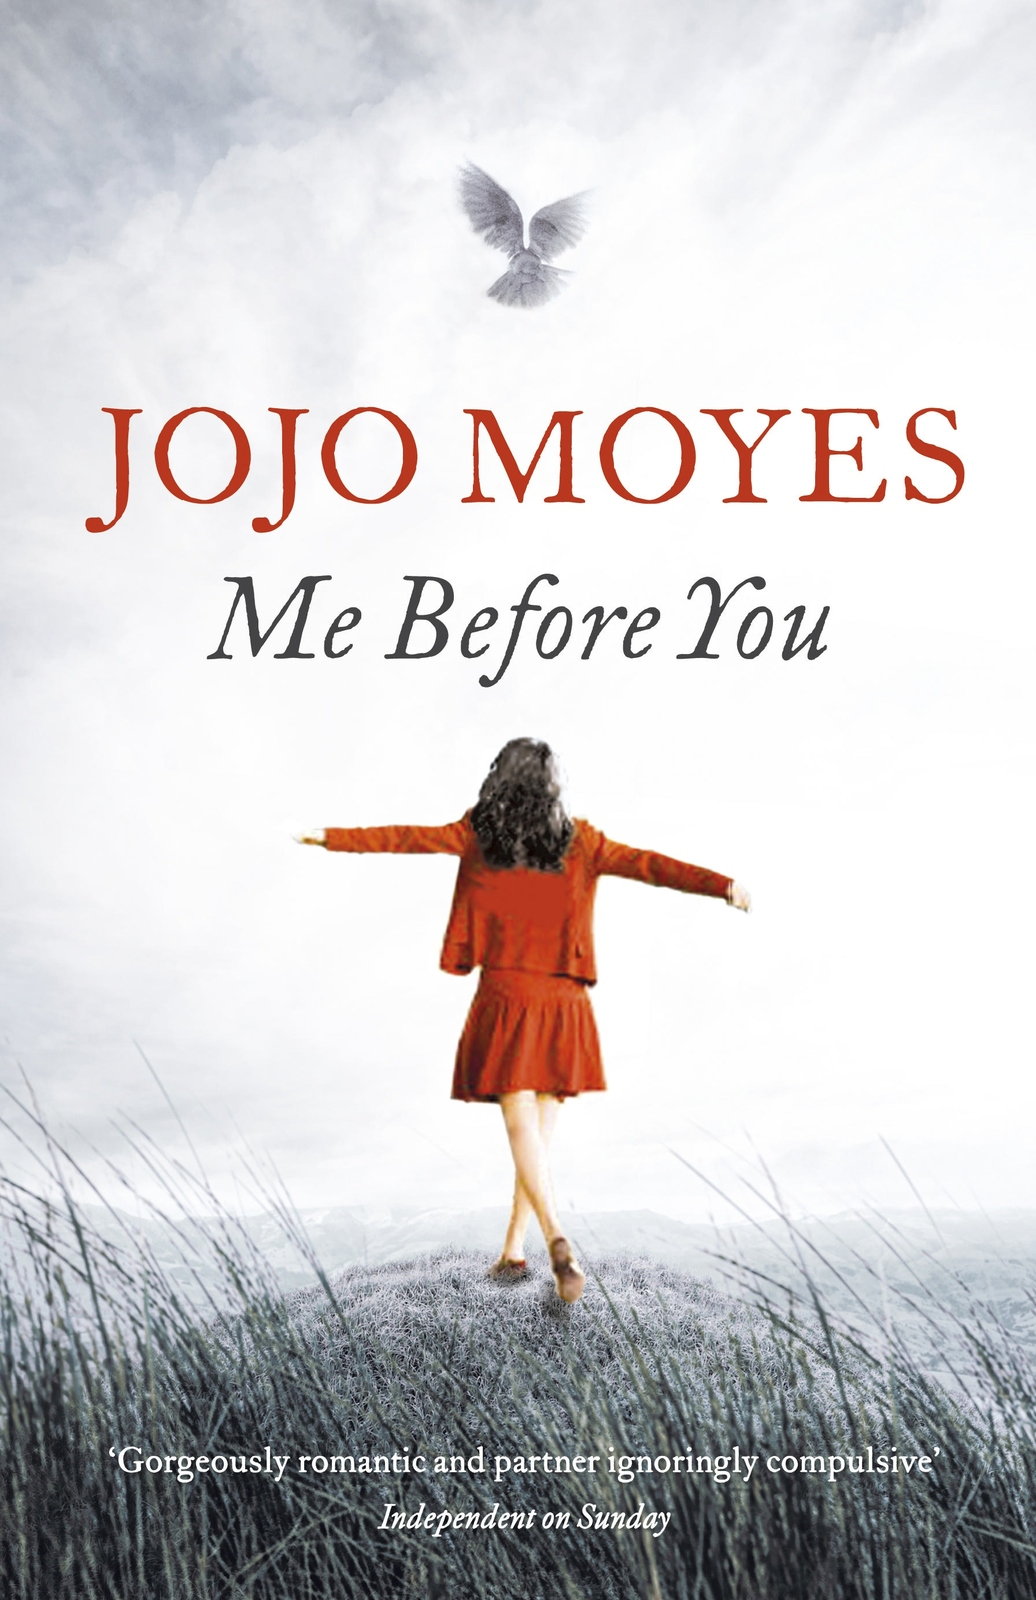 me before you jojo moyes book instock buy now at